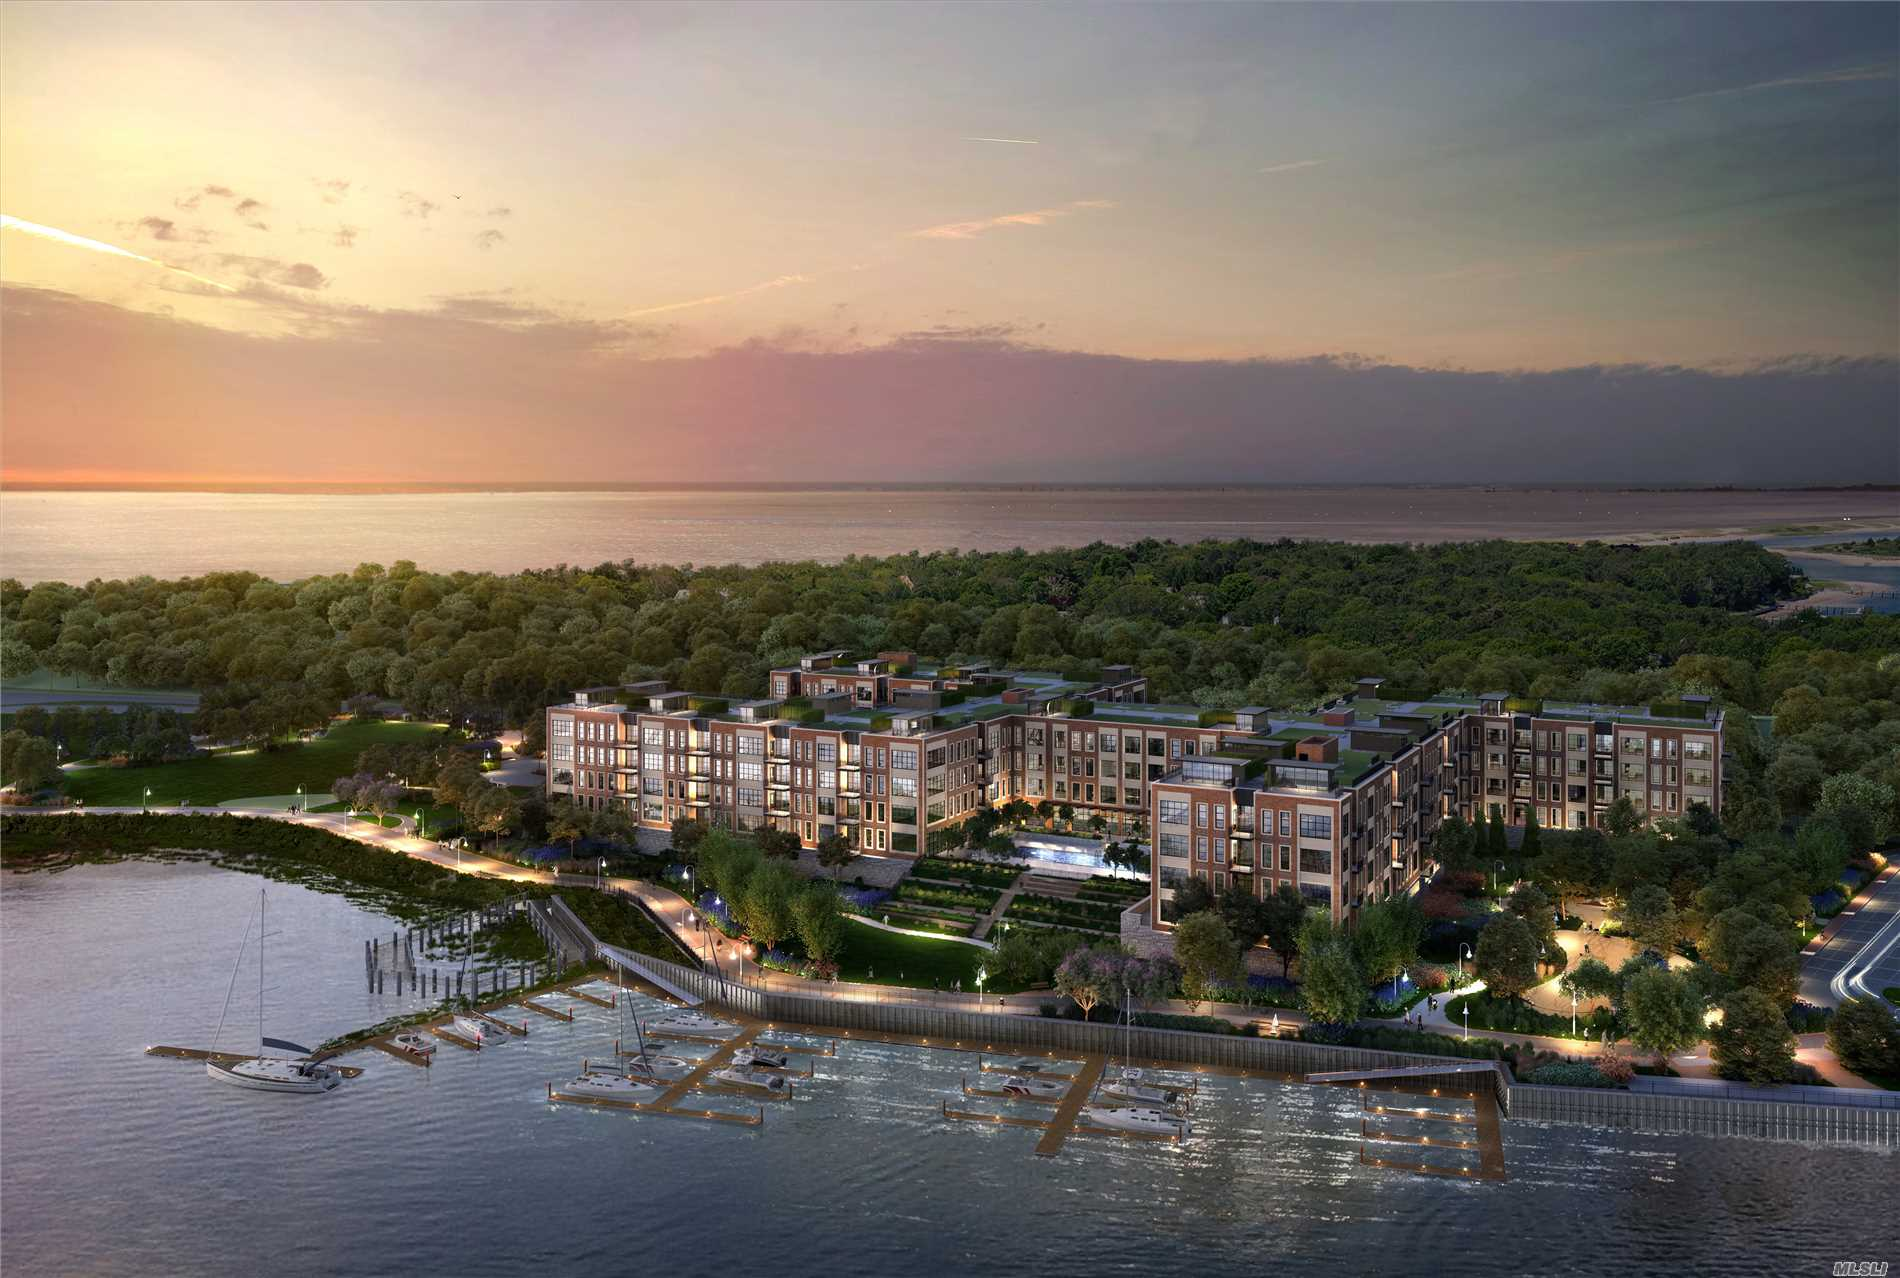 Property for sale at 100 Garvies Point Road # 1310, Glen Cove NY 11542, Glen Cove,  New York 11542